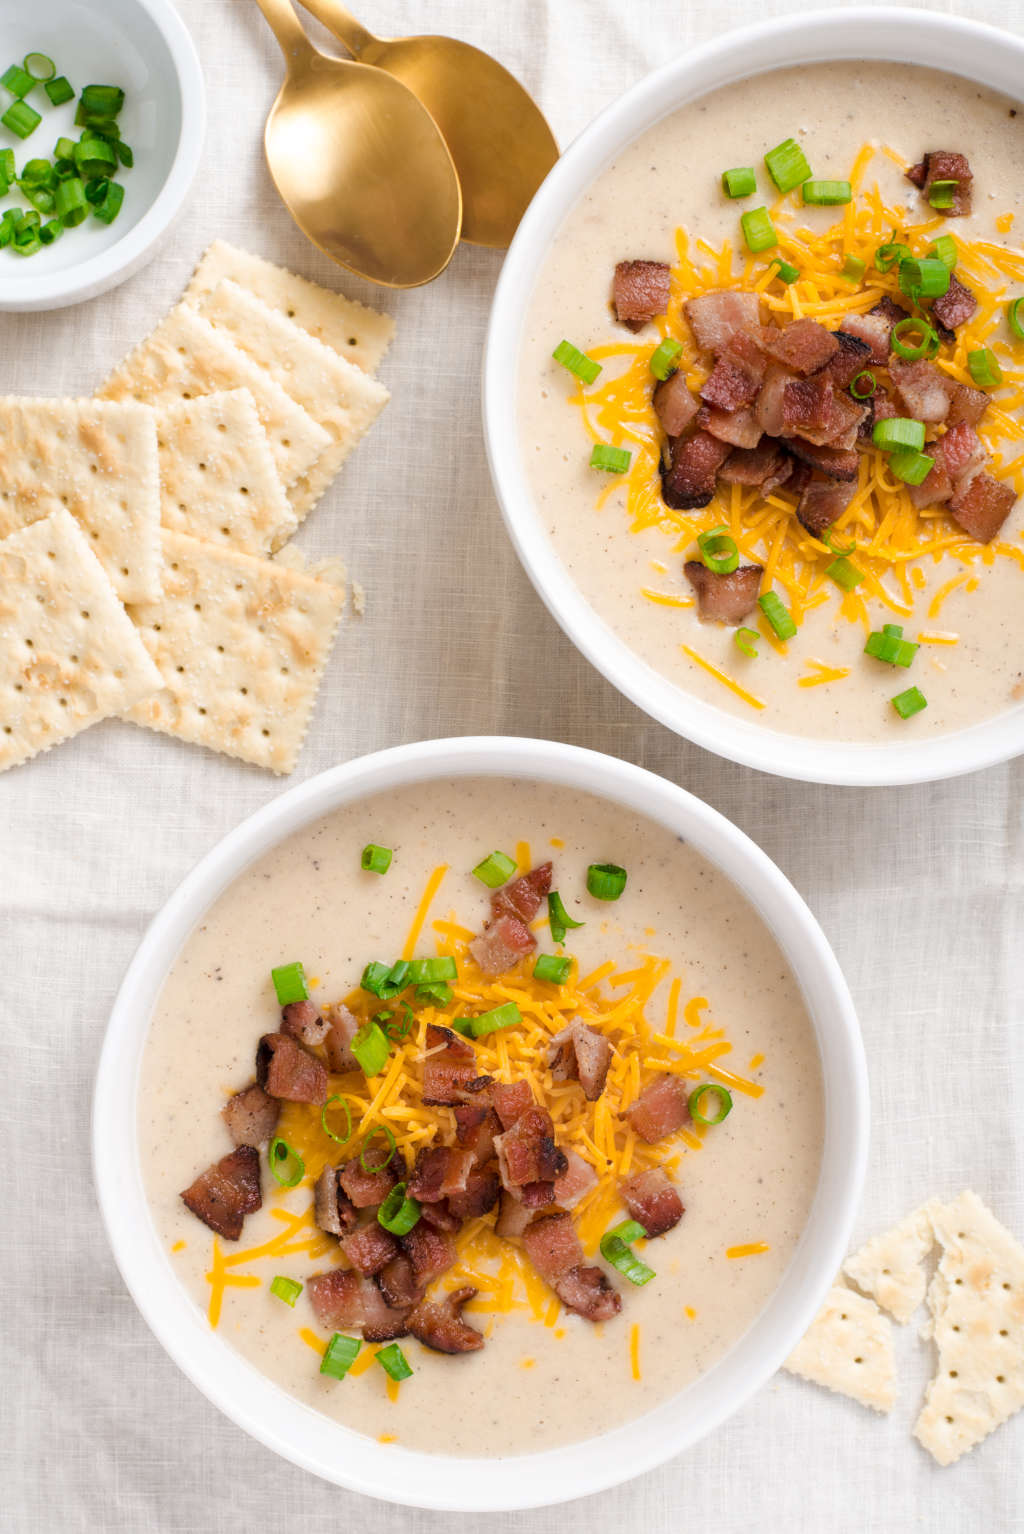 A Baked Potato Soup You Can Make with Just 5 Ingredients